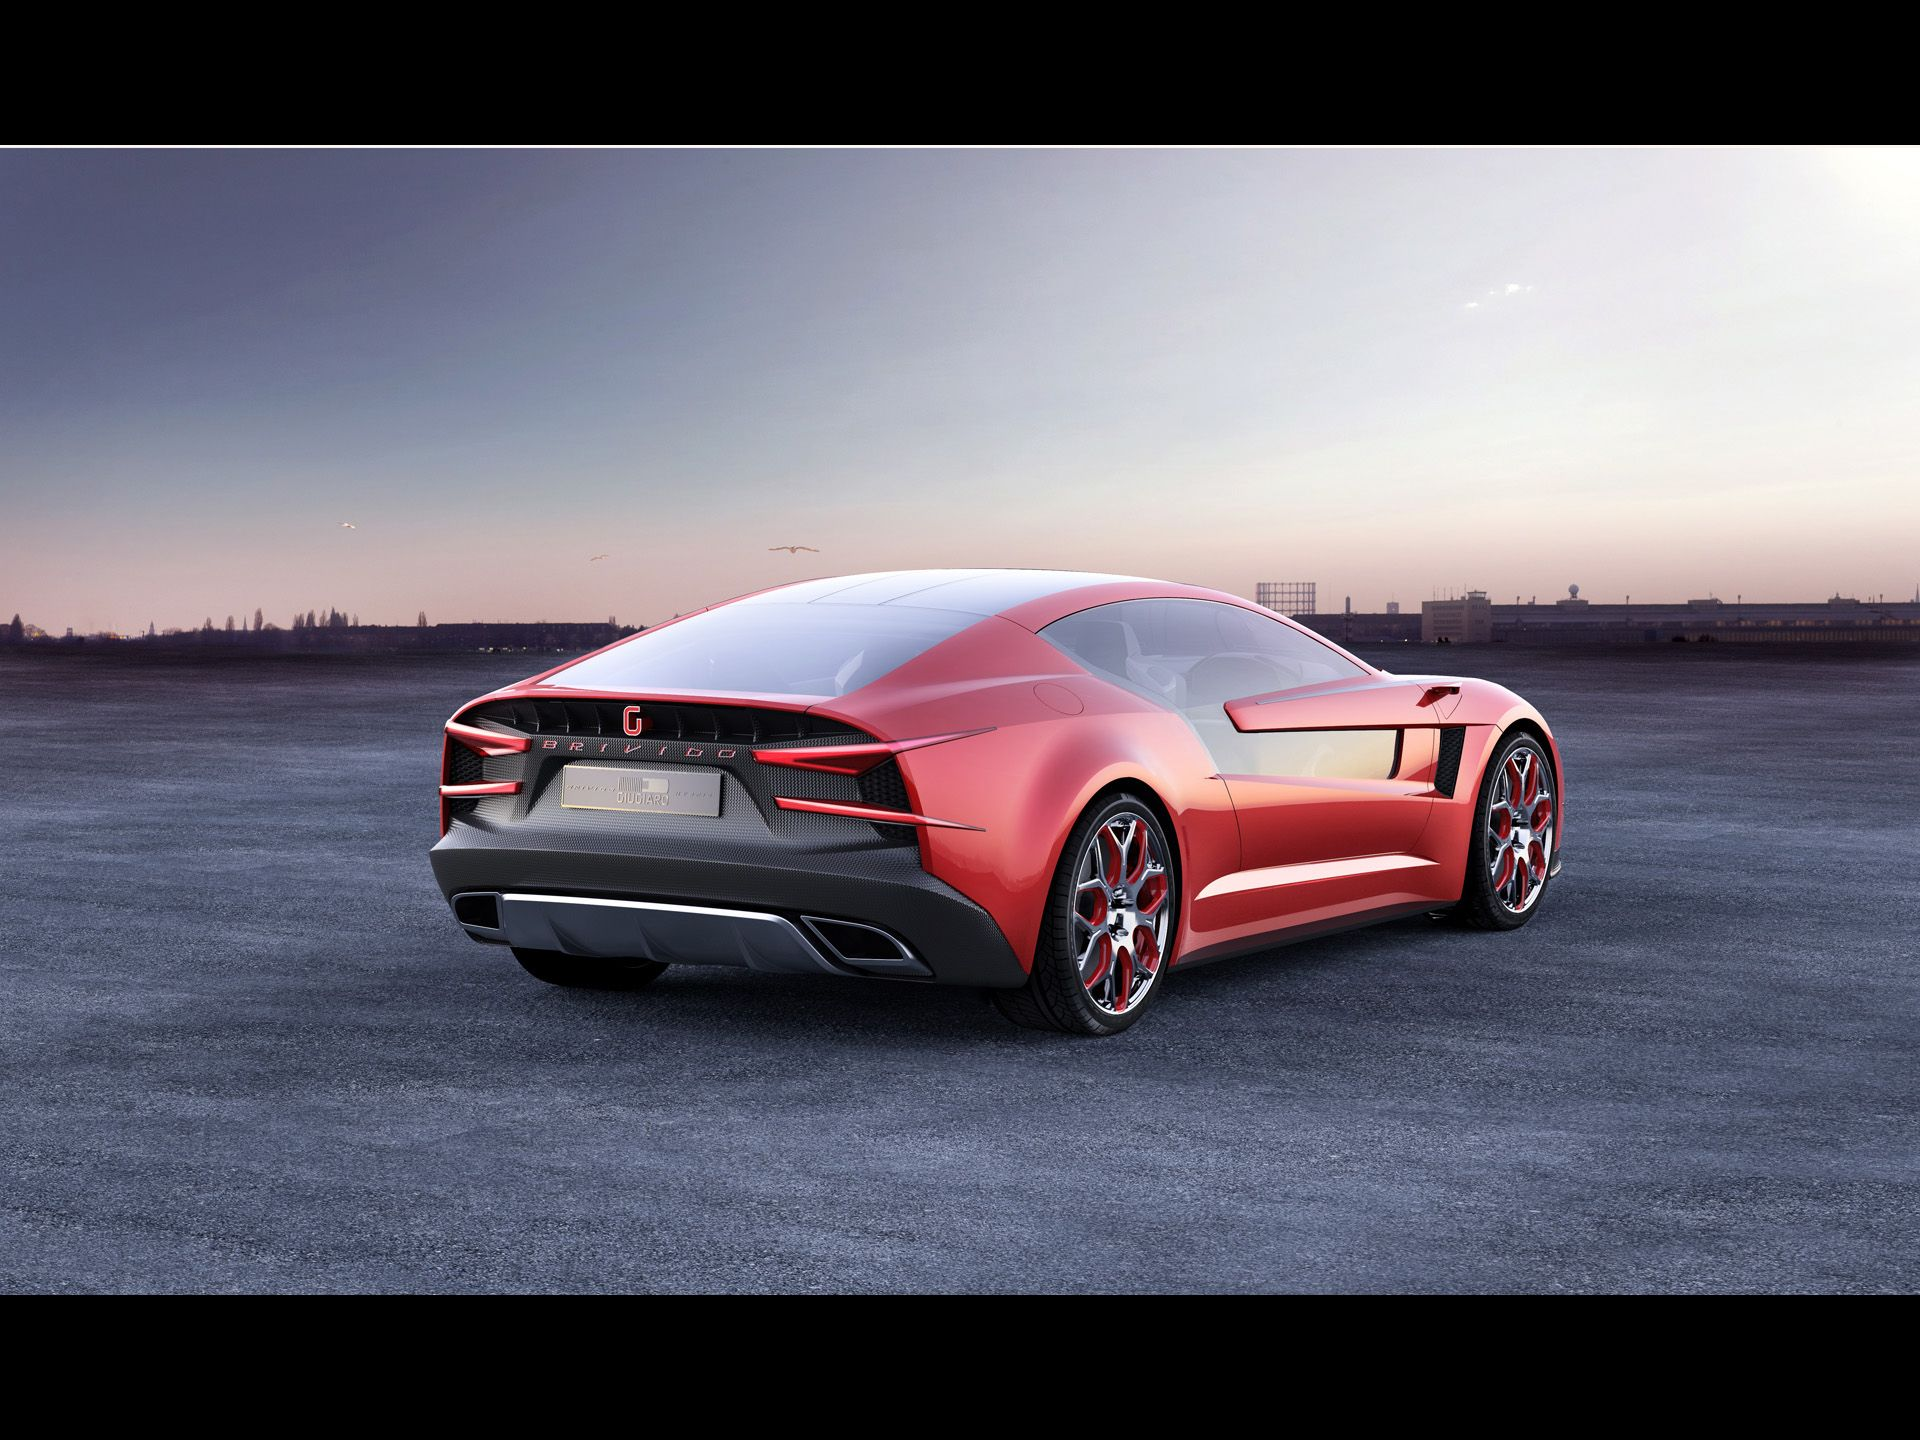 2012 Italdesign Giugiaro Brivido Concept What A Beaut Super Cars Affordable Sports Cars Cool Sports Cars